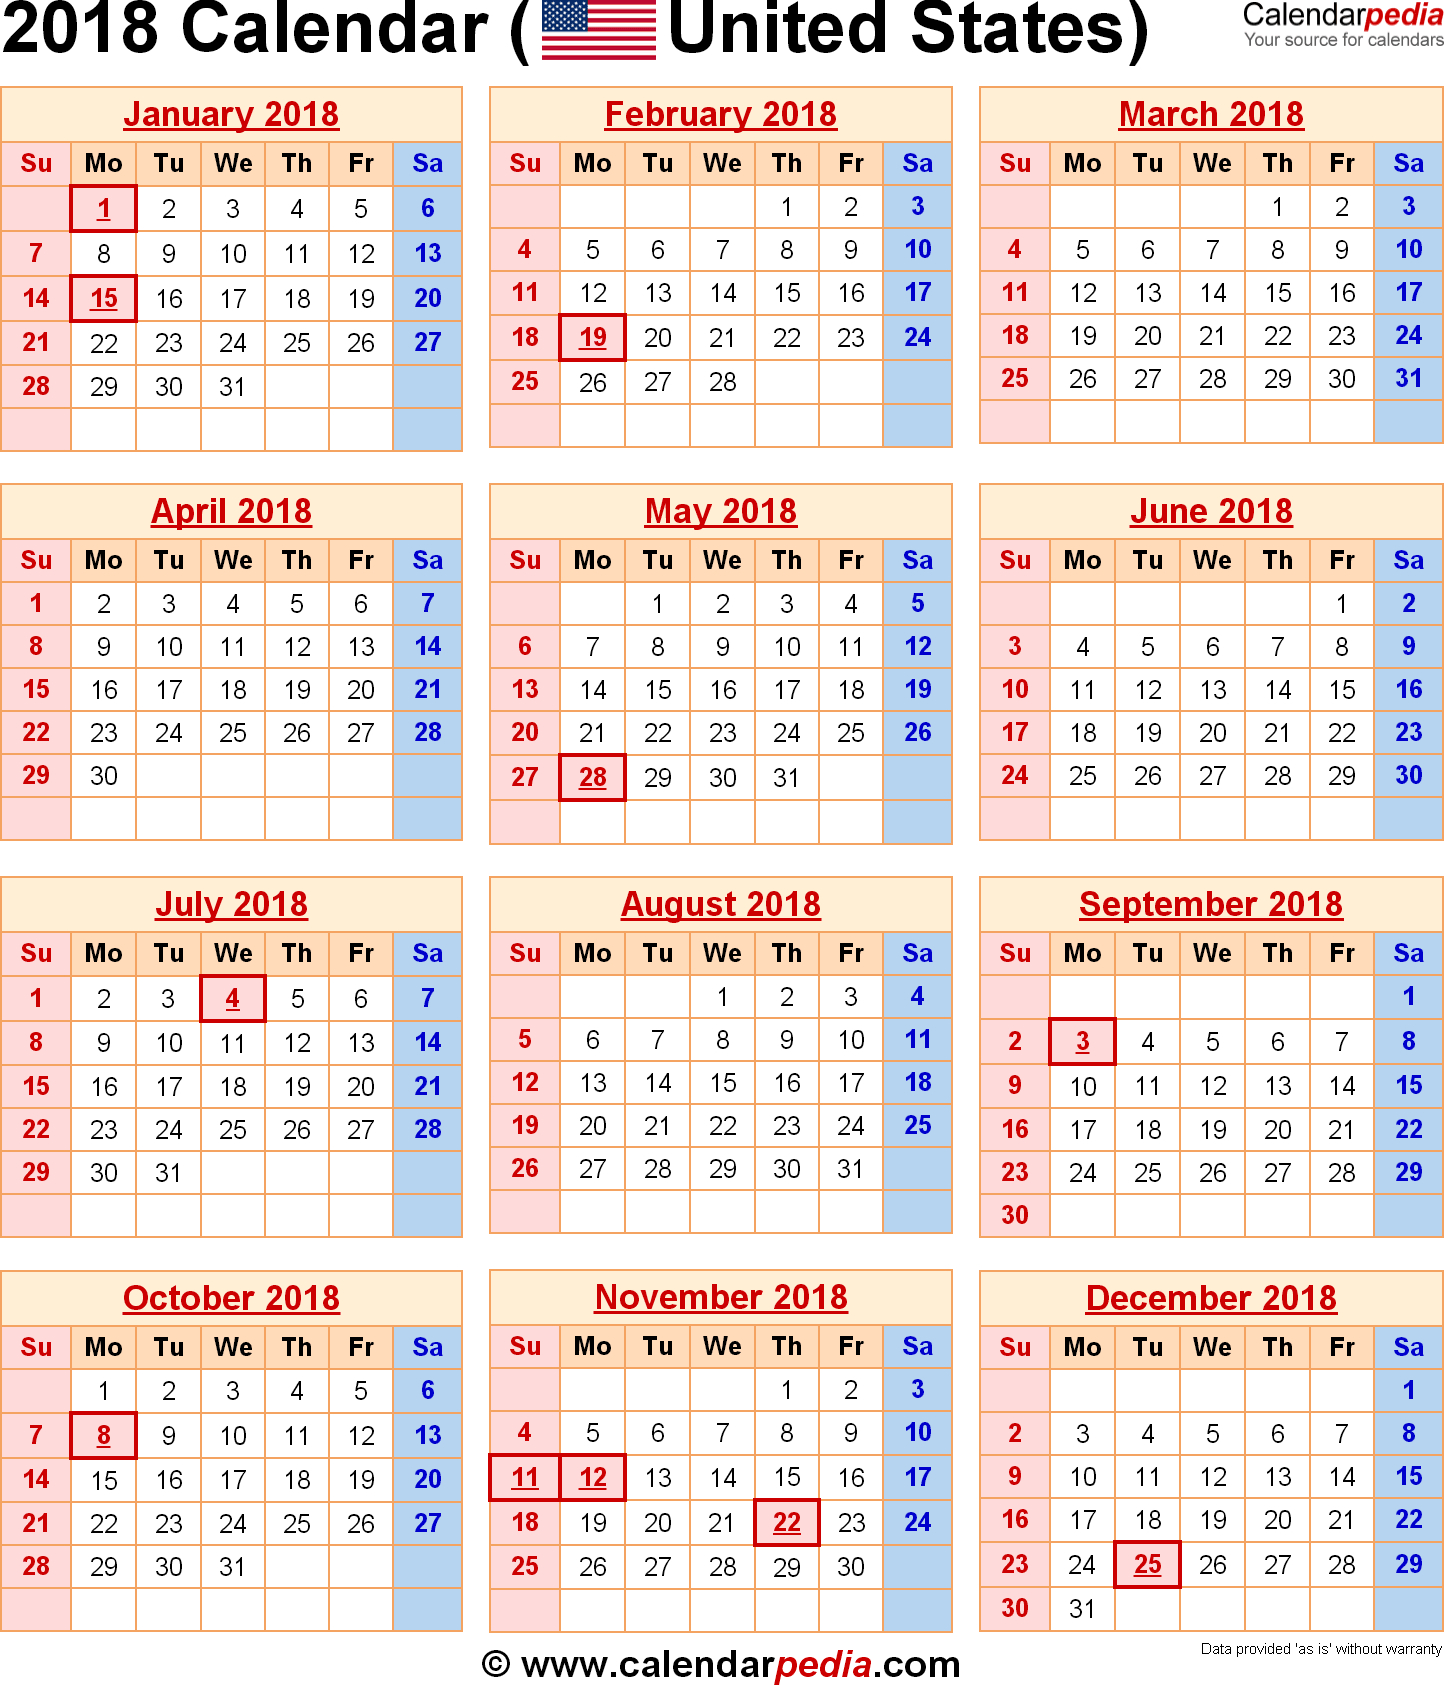 2018 Calendar | Calendars Diy | Holiday Calendar, 2018